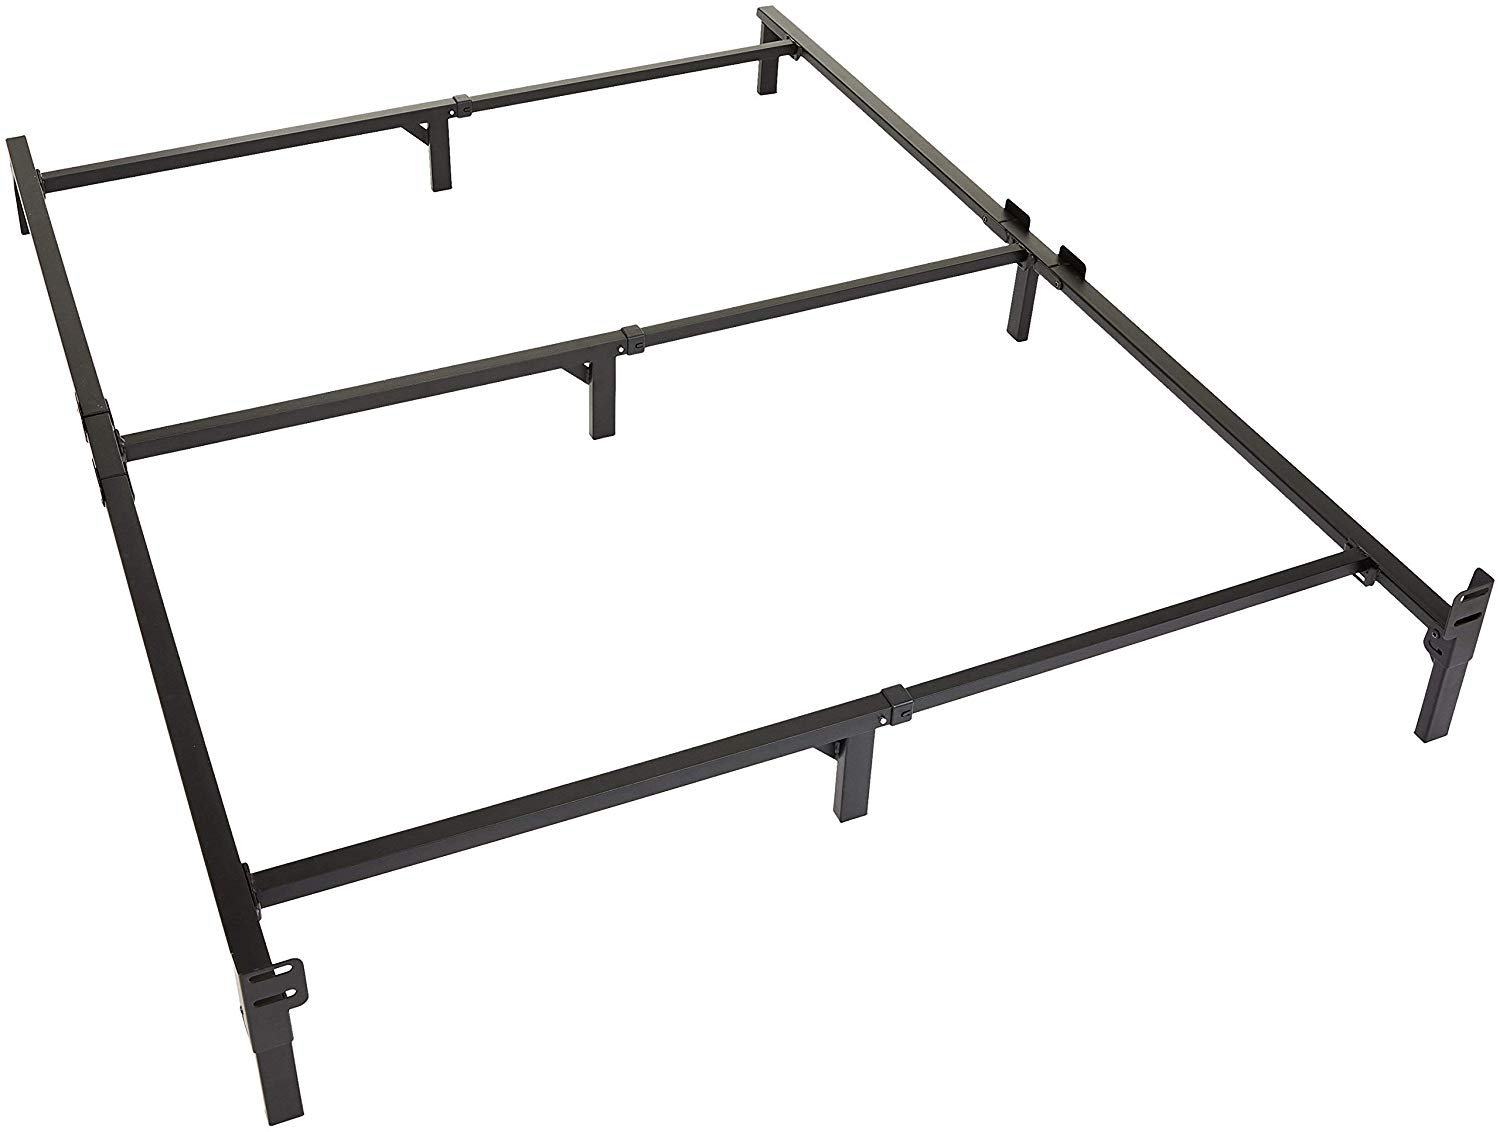 Amazon Basics 9 Legs Support Bed Frame For Box Spring And